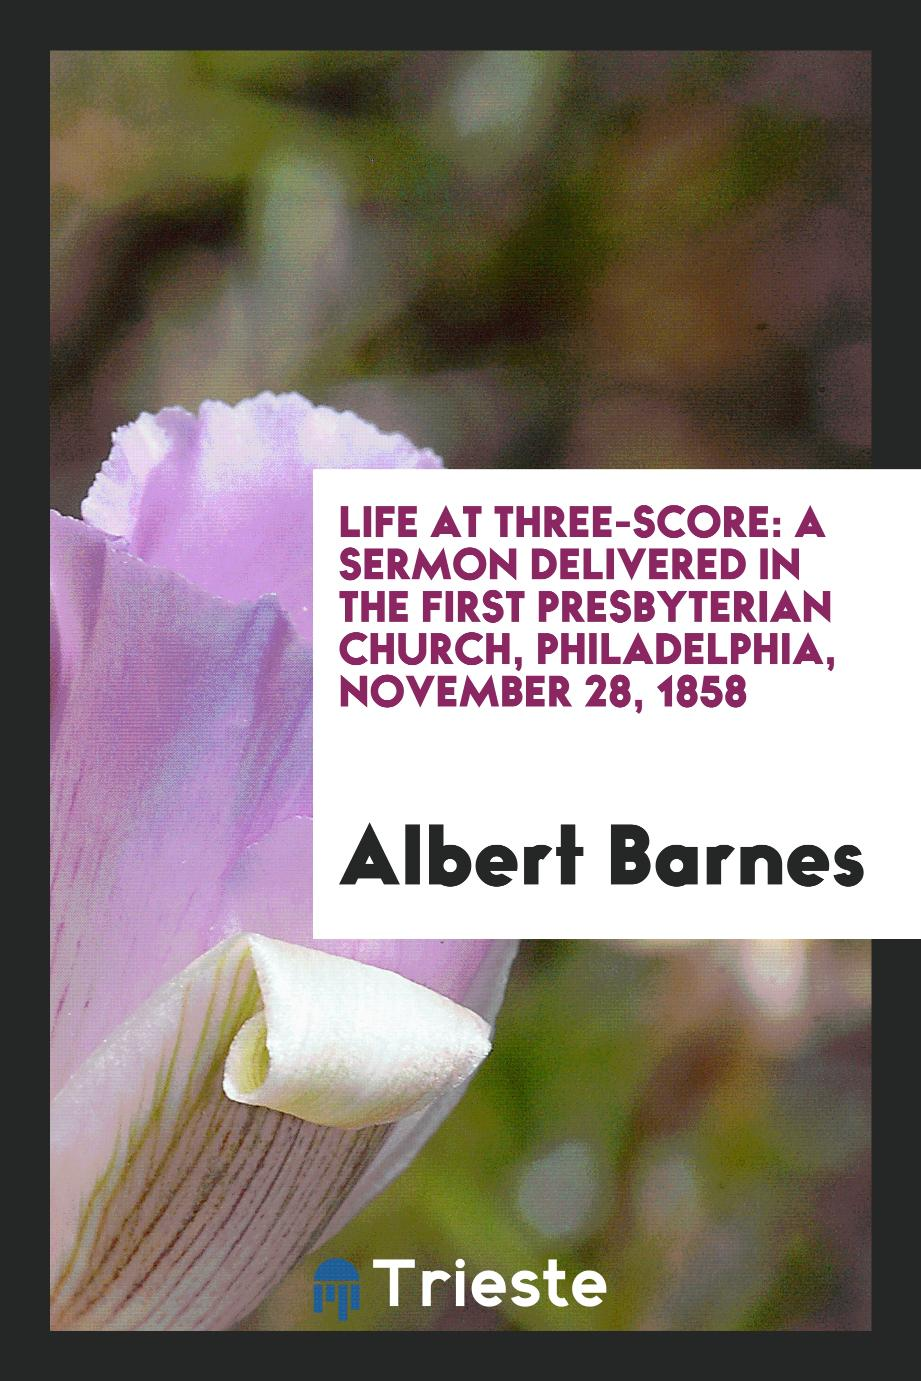 Life at Three-score: A Sermon Delivered in the First Presbyterian Church, Philadelphia, November 28, 1858